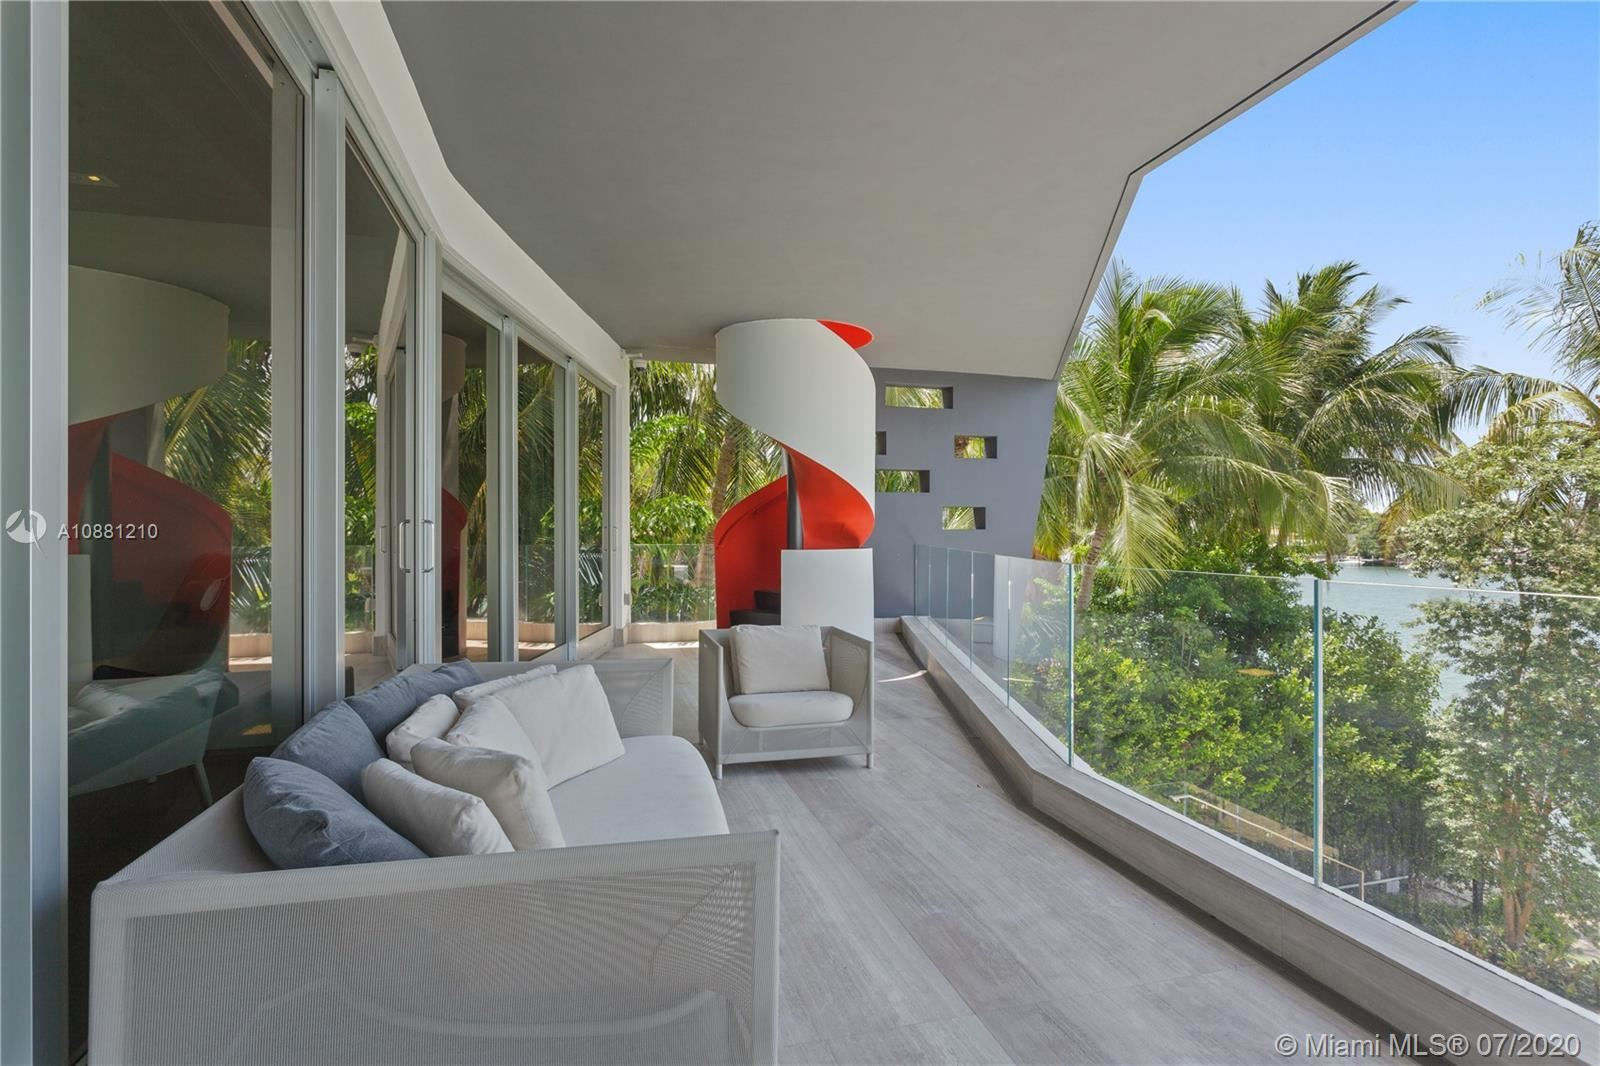 Photo 26 of Listing MLS a10881210 in 370 S Hibiscus Dr Miami Beach FL 33139